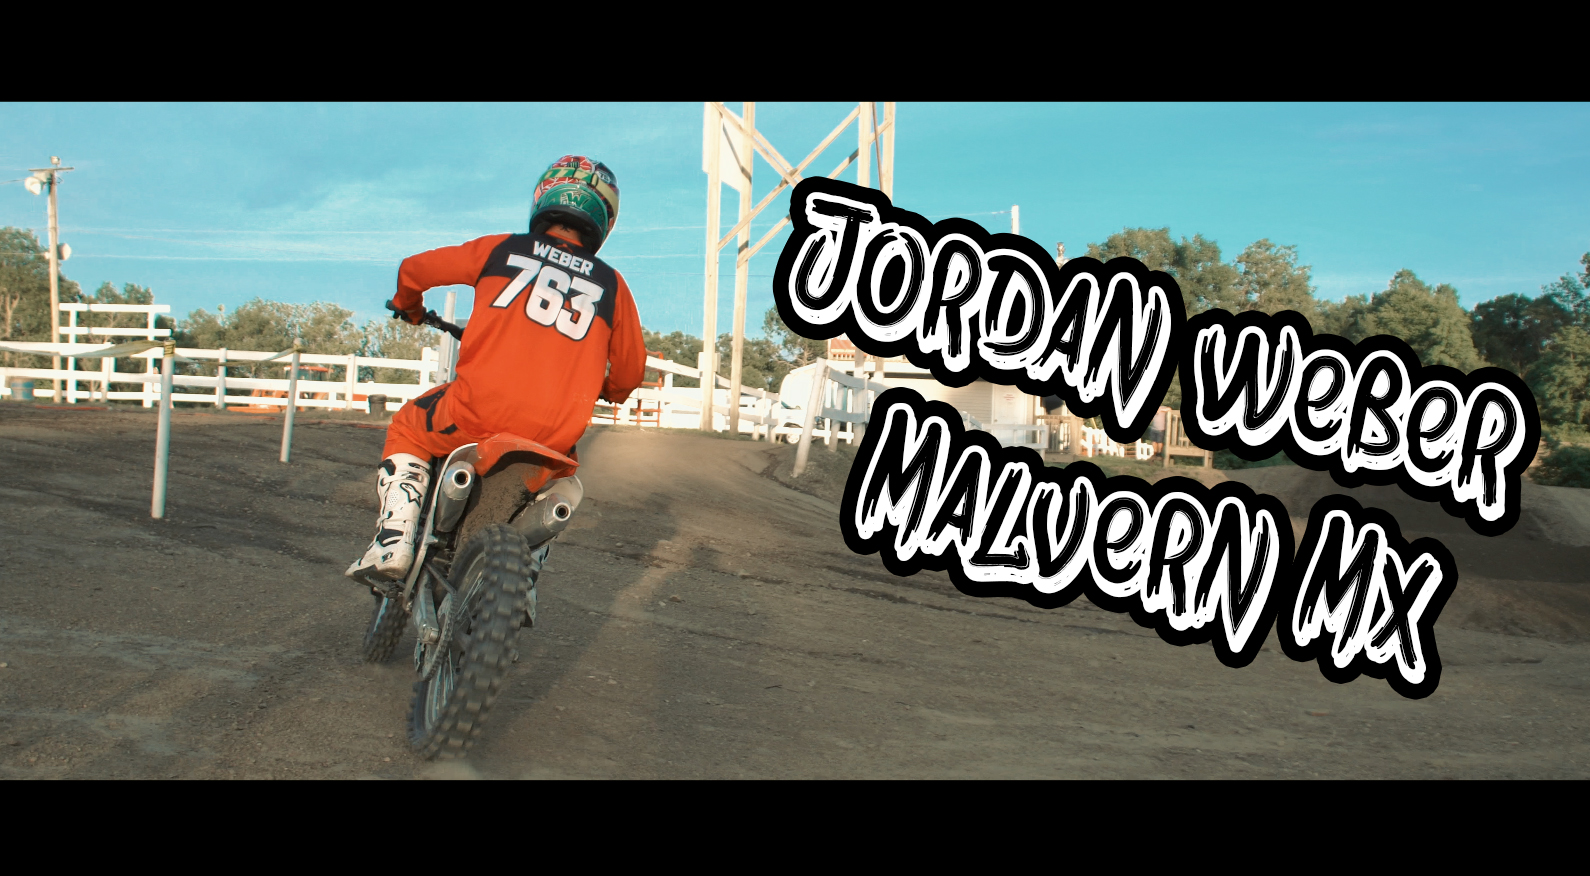 Jordan Weber Malvern Mx Mini Edit 1sevenfilms Motocross Videos Vital